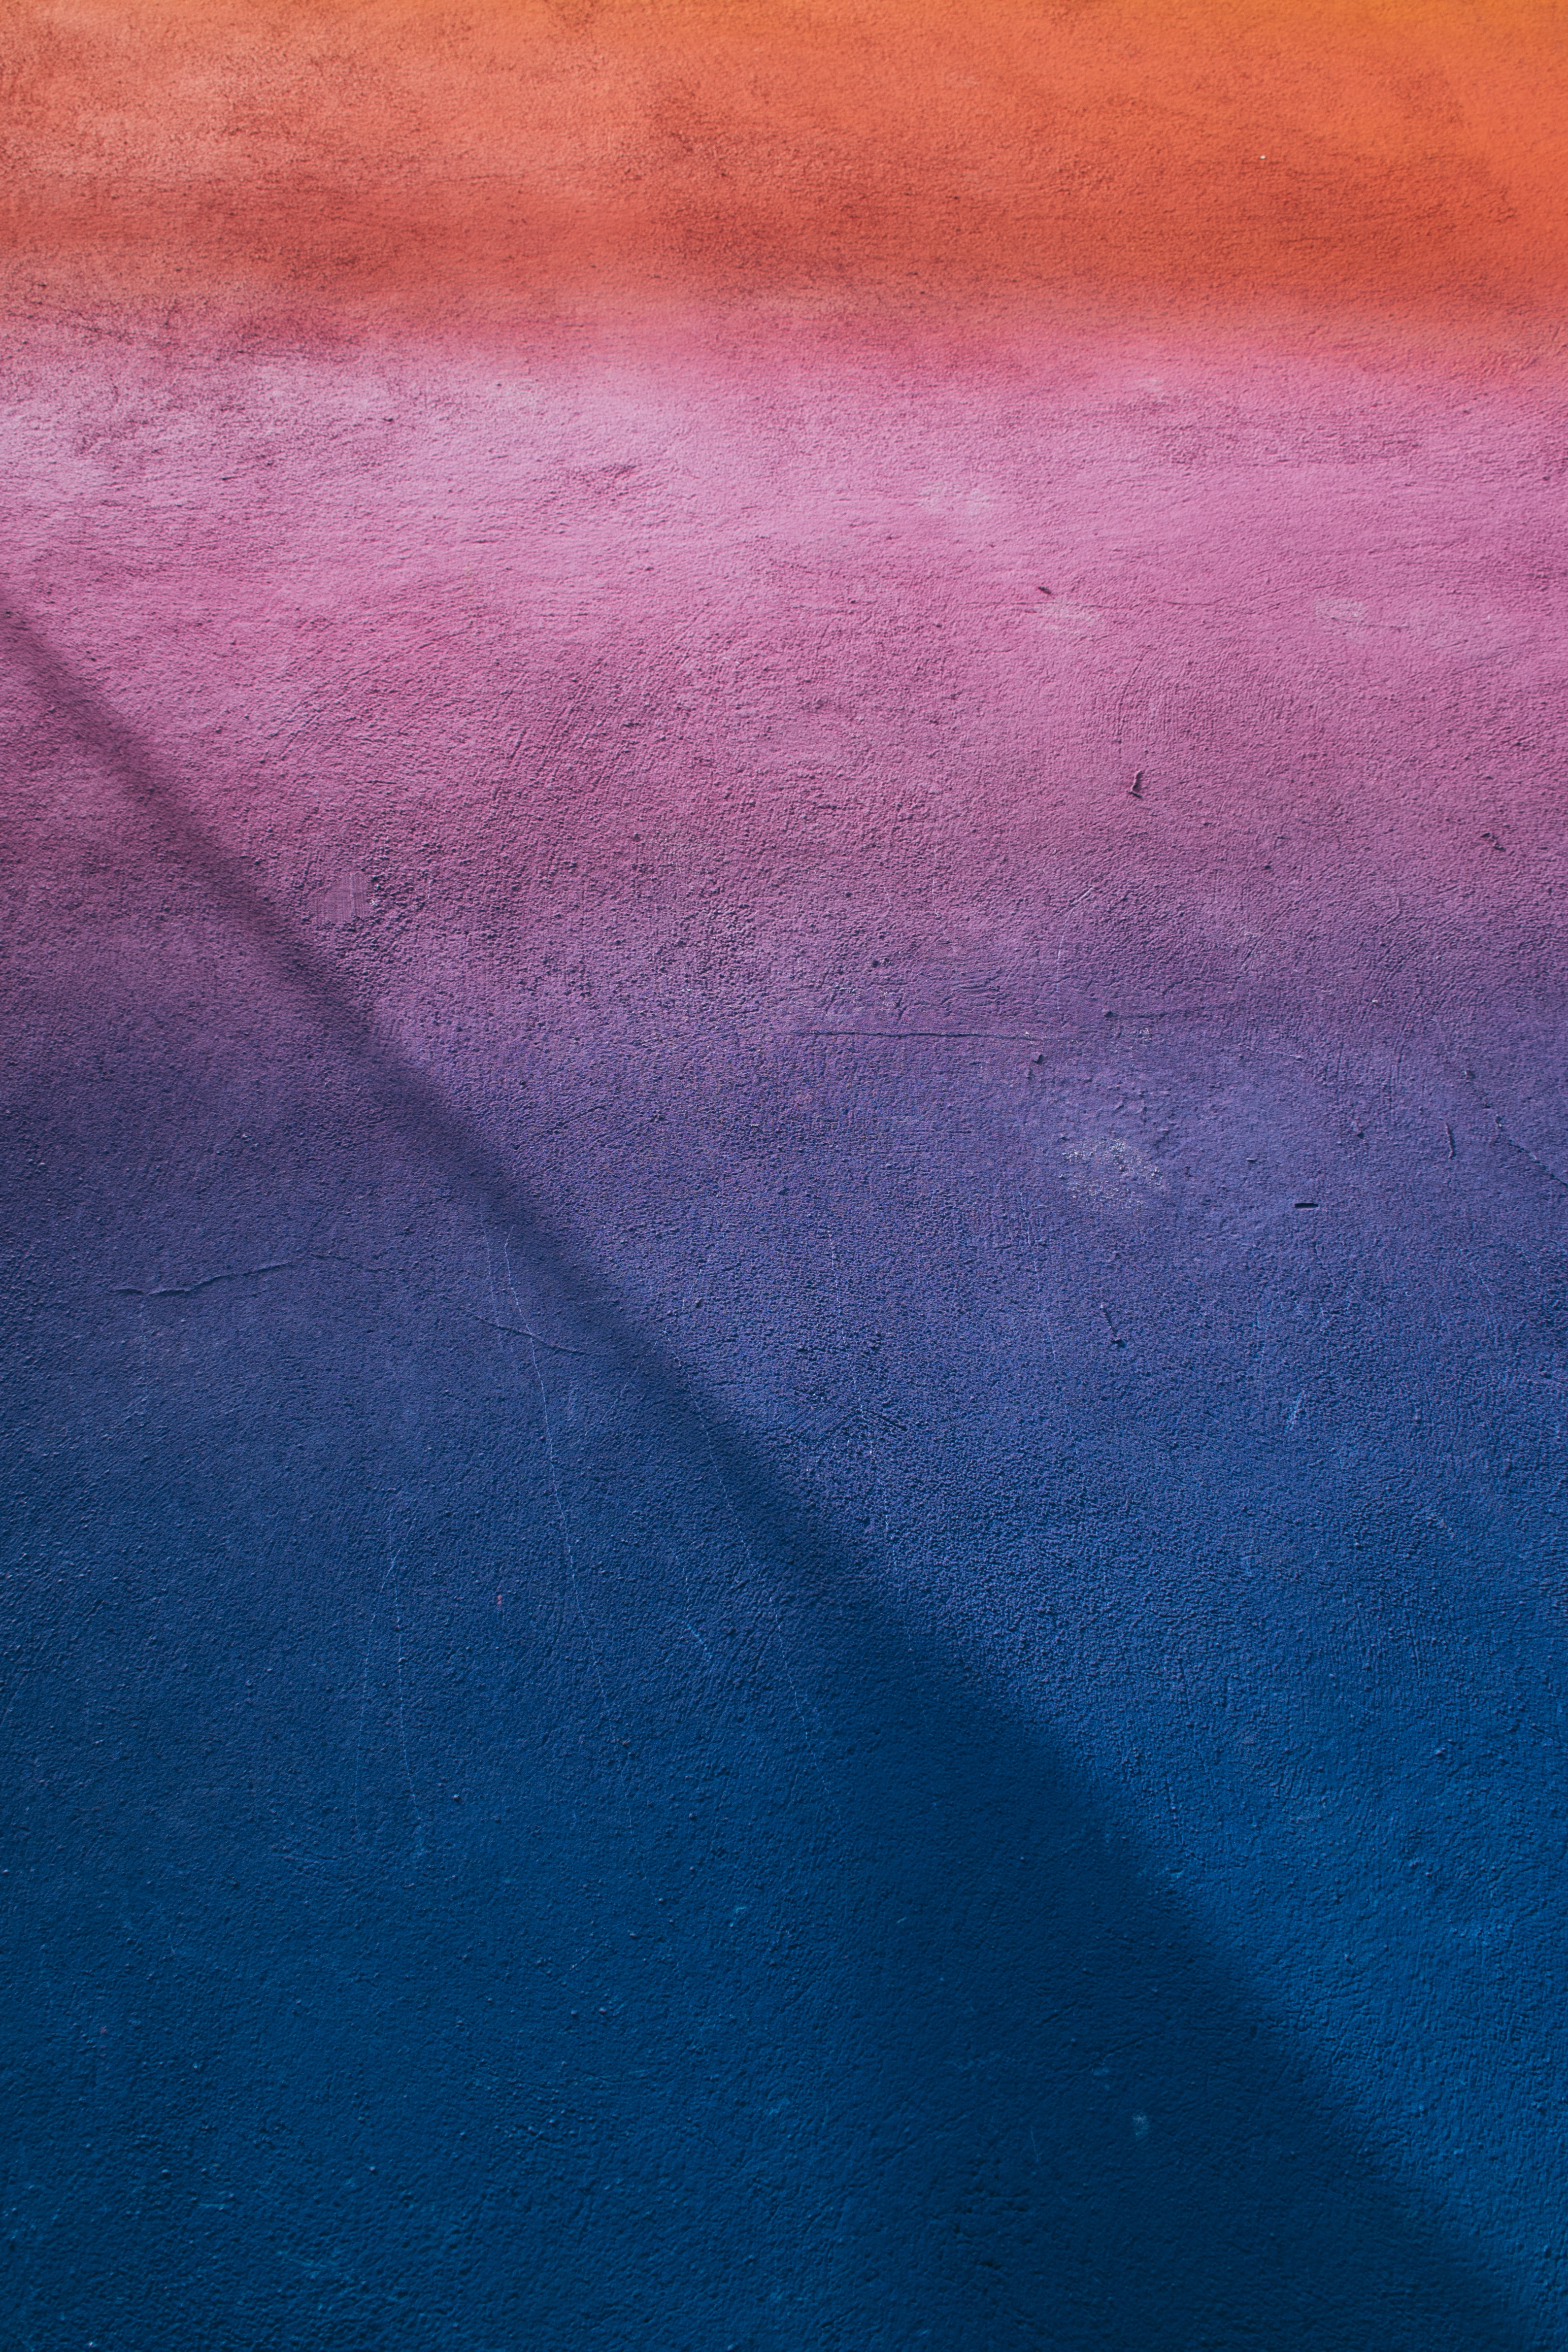 124279 download wallpaper Textures, Shine, Light, Asphalt, Texture, Shadow, Gradient screensavers and pictures for free